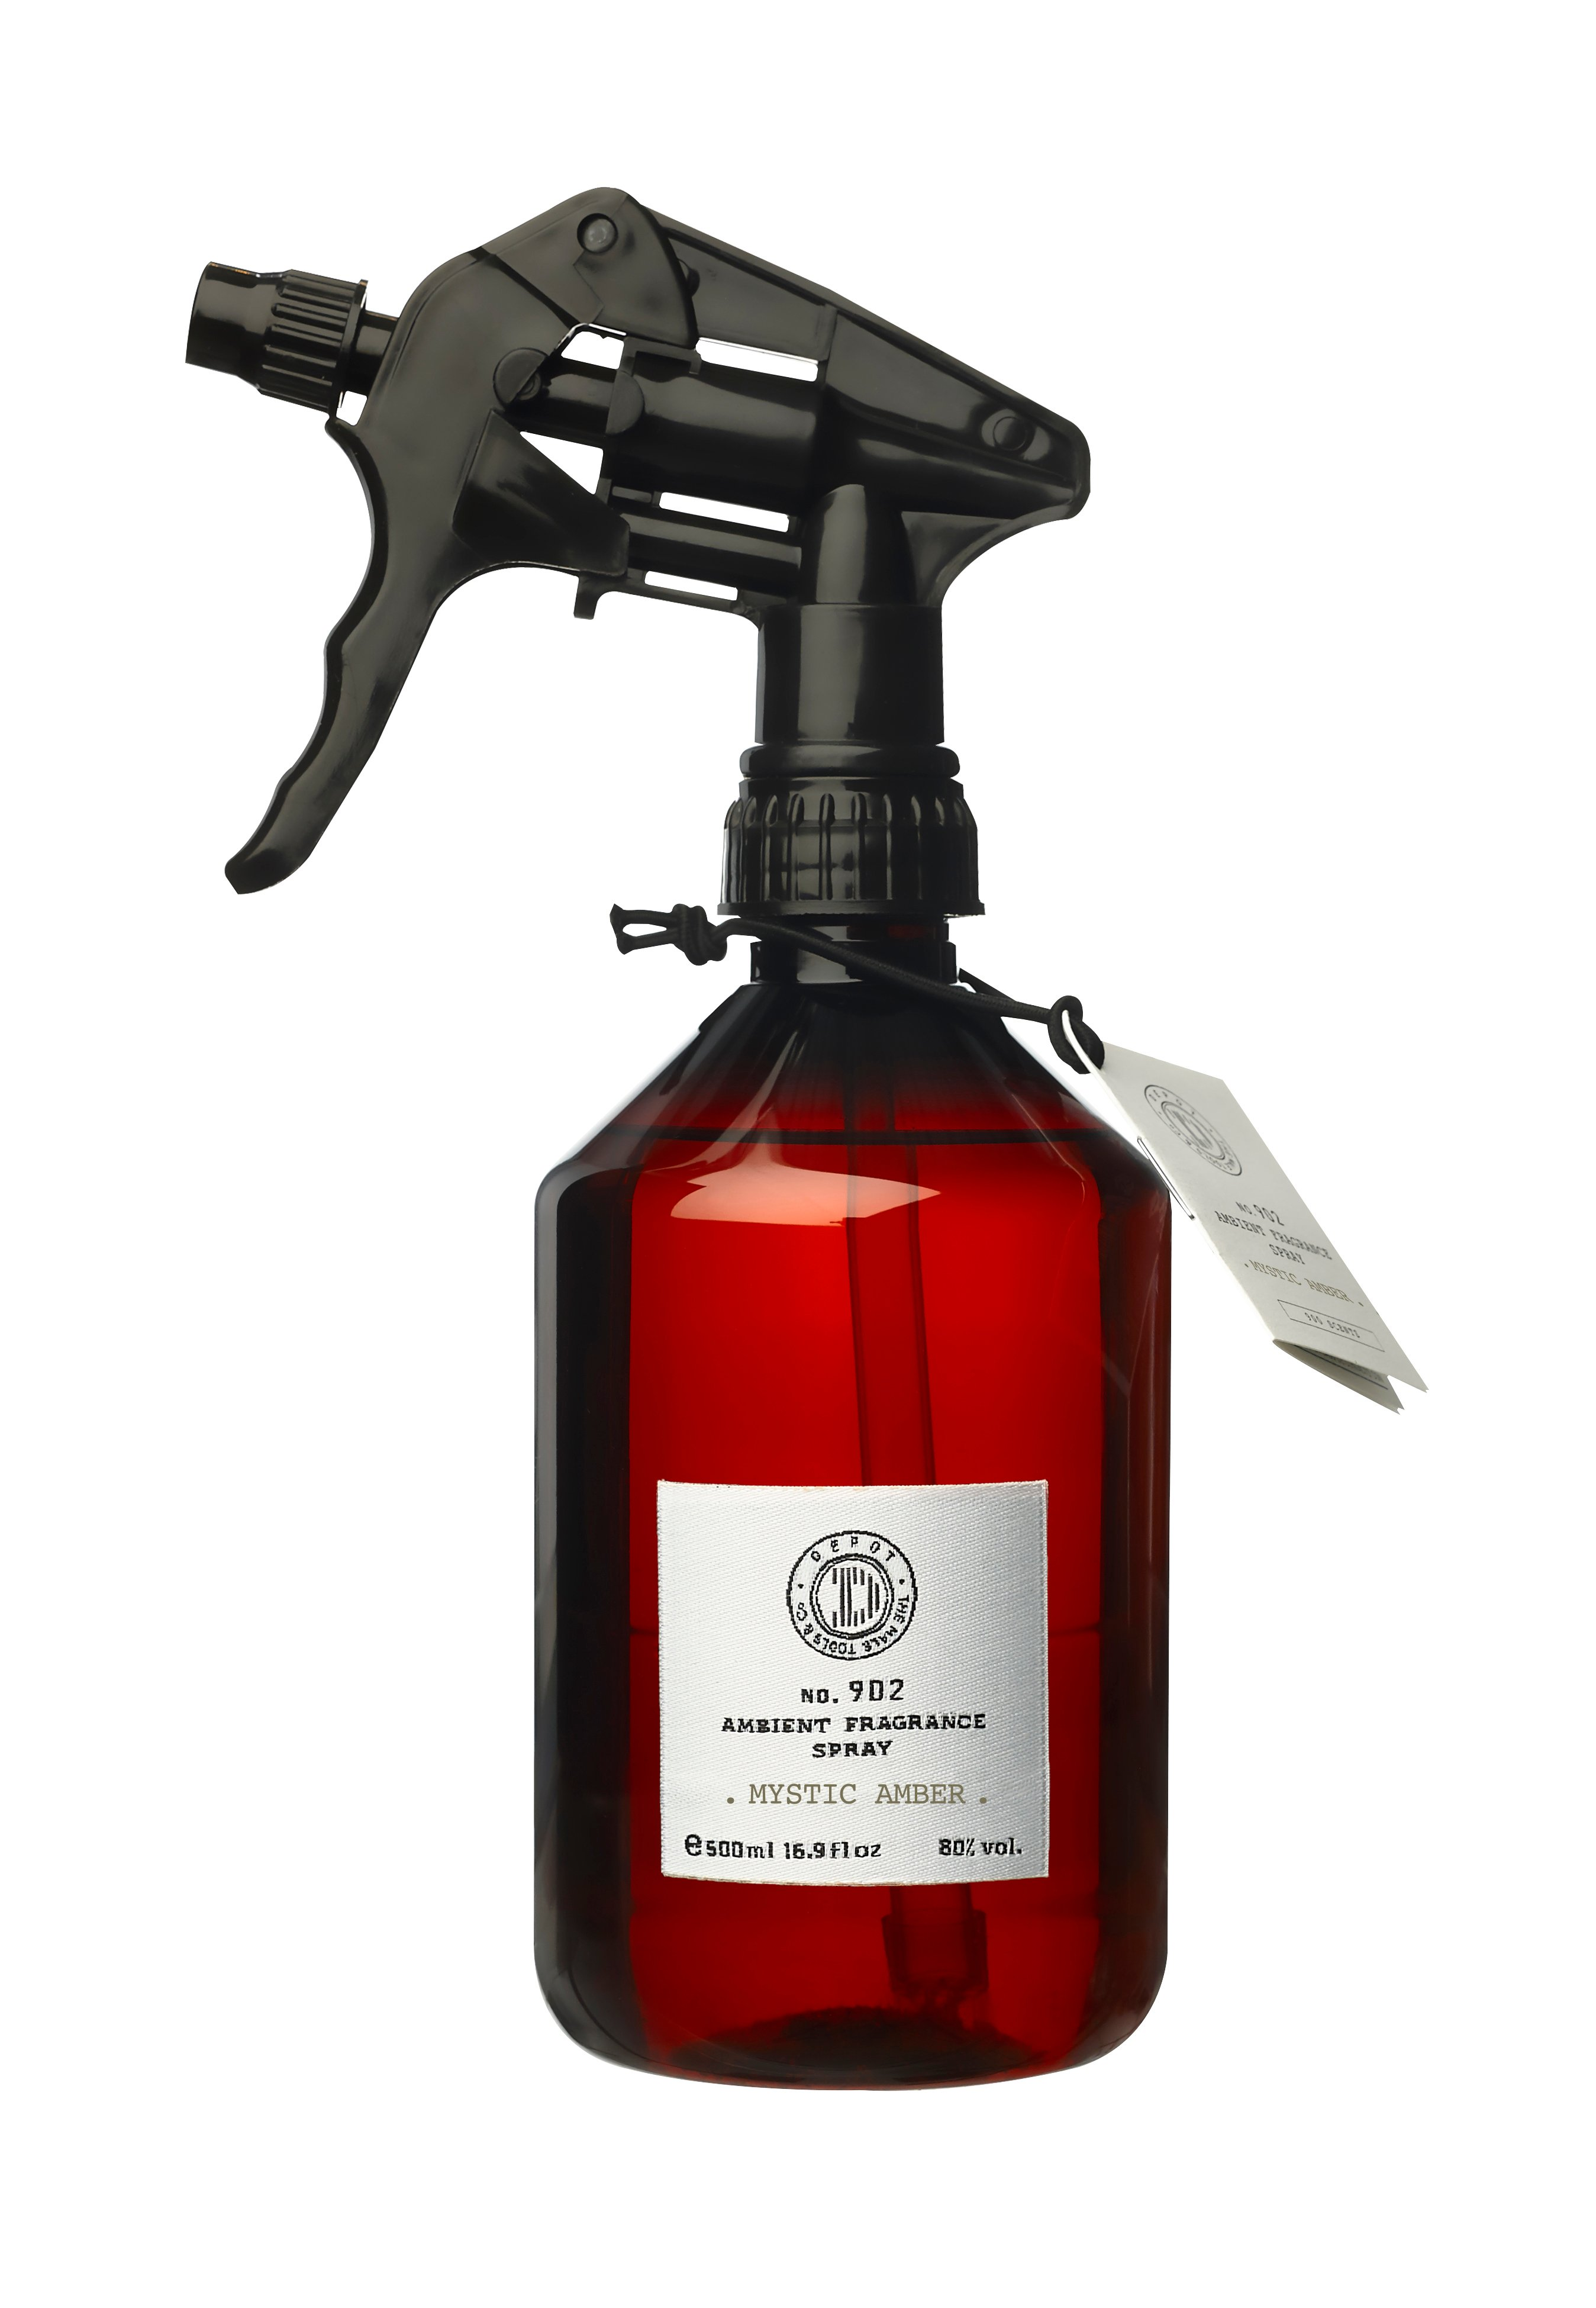 Depot - No. 902 Ambient Fragrance Spray - Mystic Amber